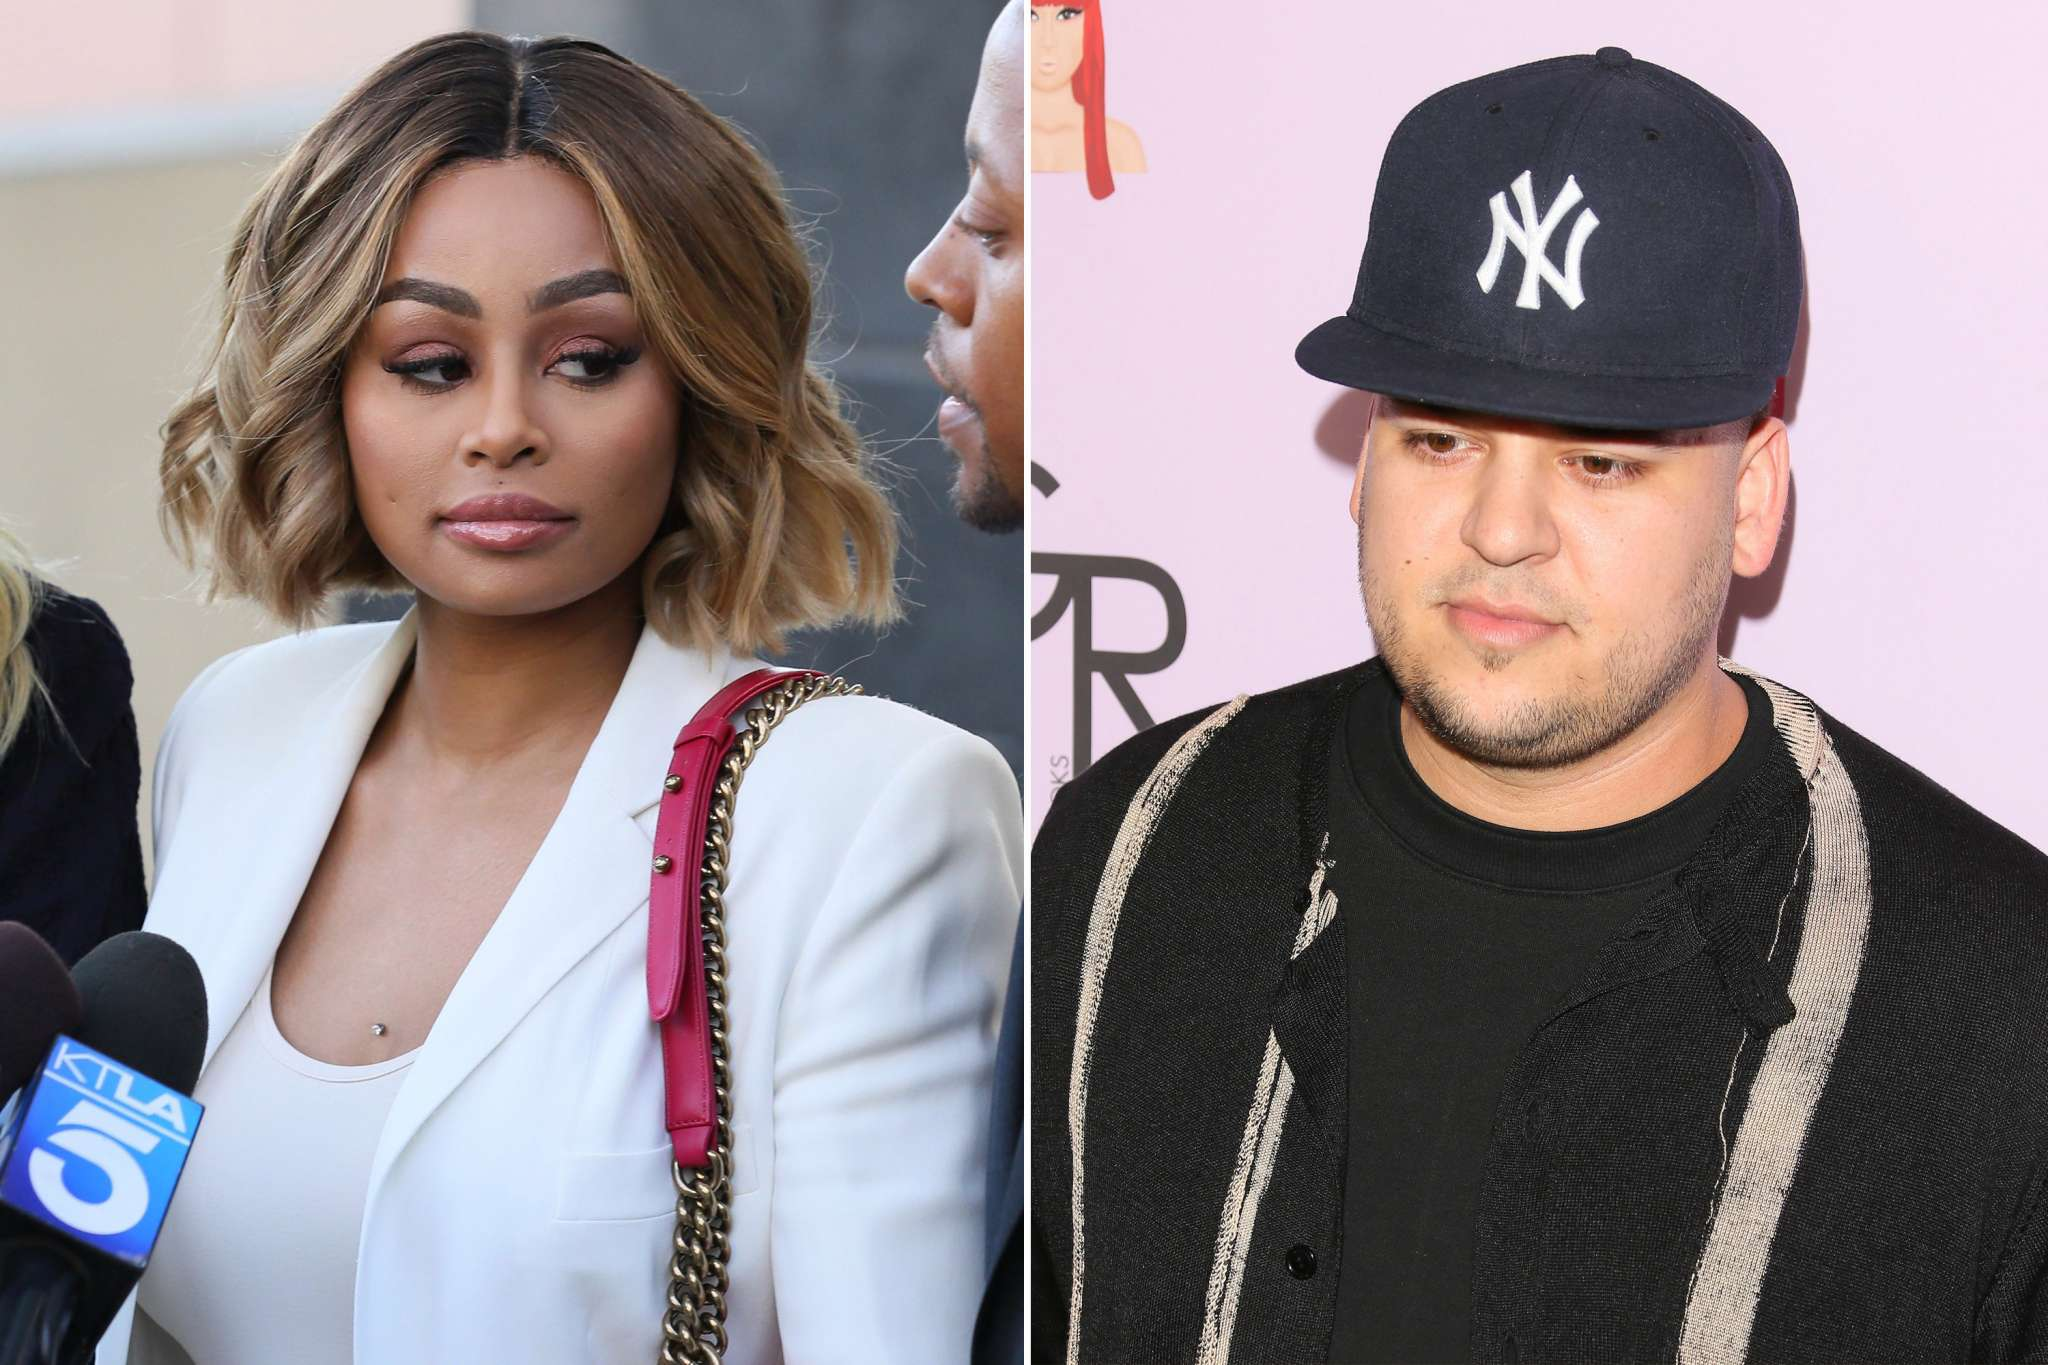 kuwk-family-worried-blac-chyna-will-seduce-rob-kardashian-again